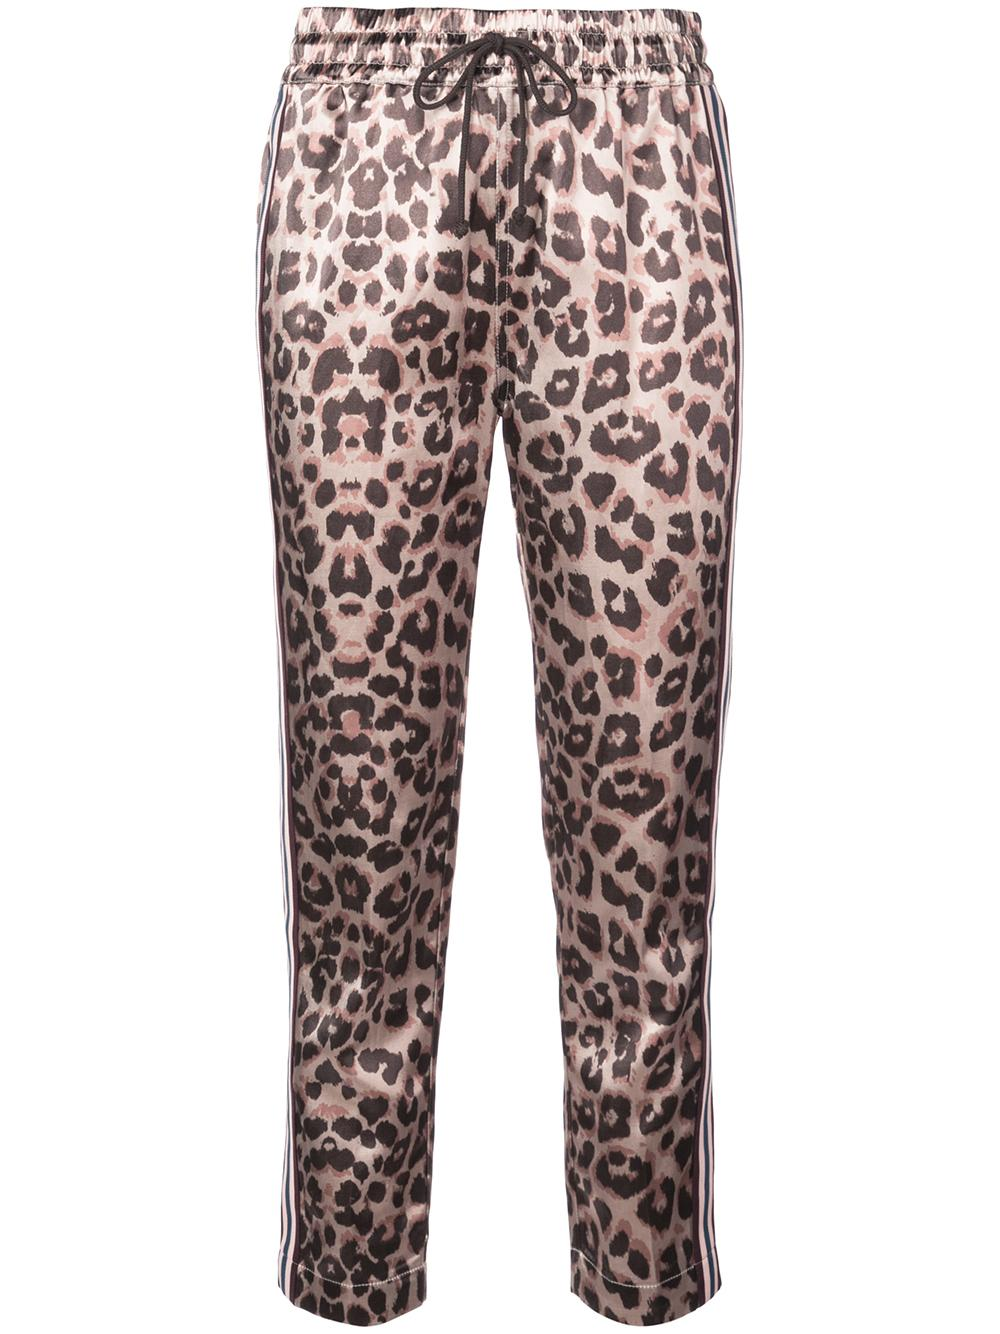 The Leopard Lounger Racer Ankle Item # 1581-668